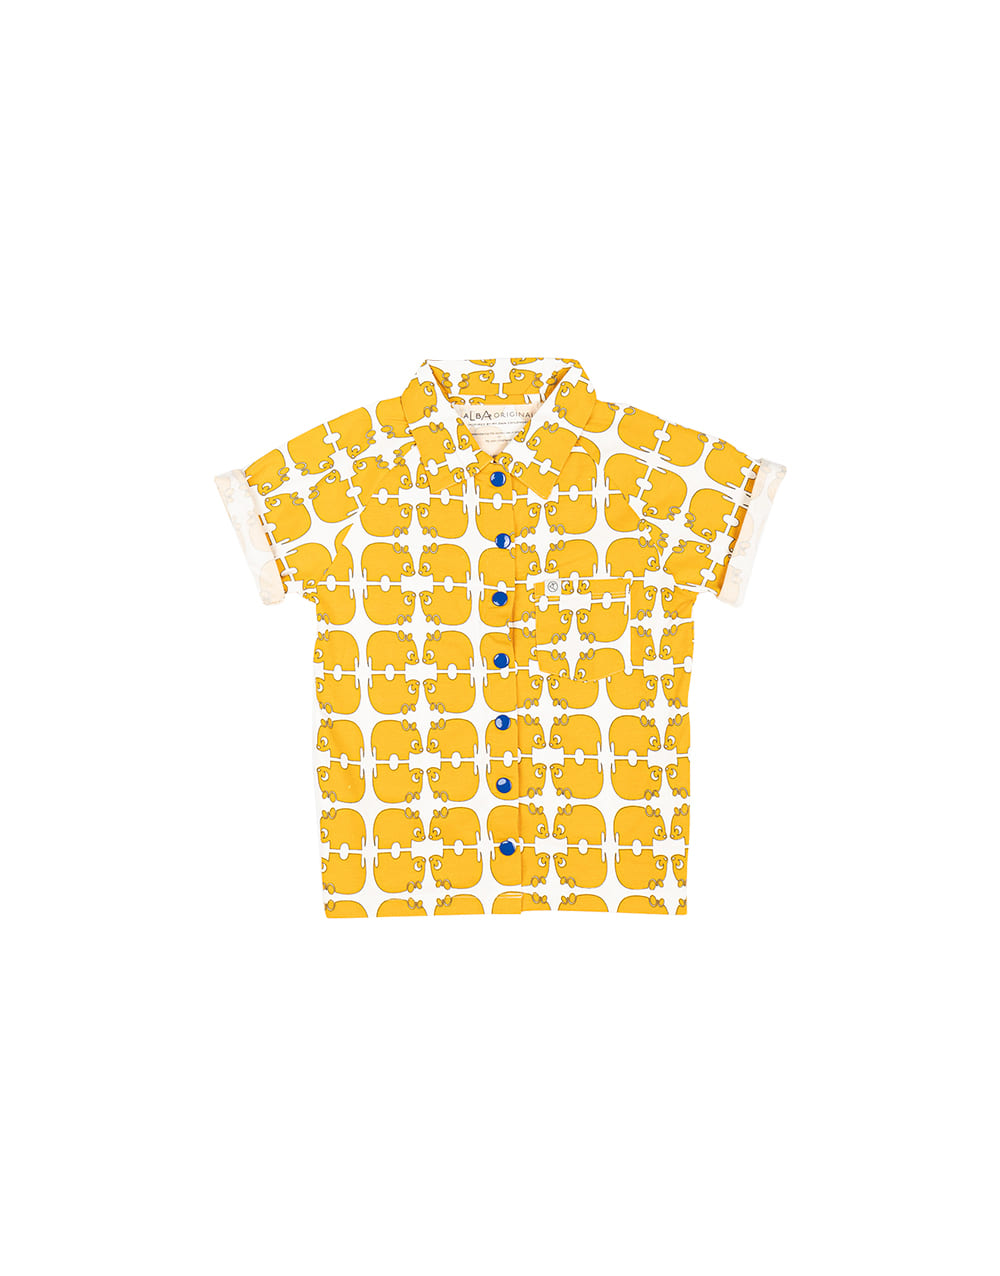 ALBA ORIGINAL   CHRIS SHIRT   Bright Gold Wanna be